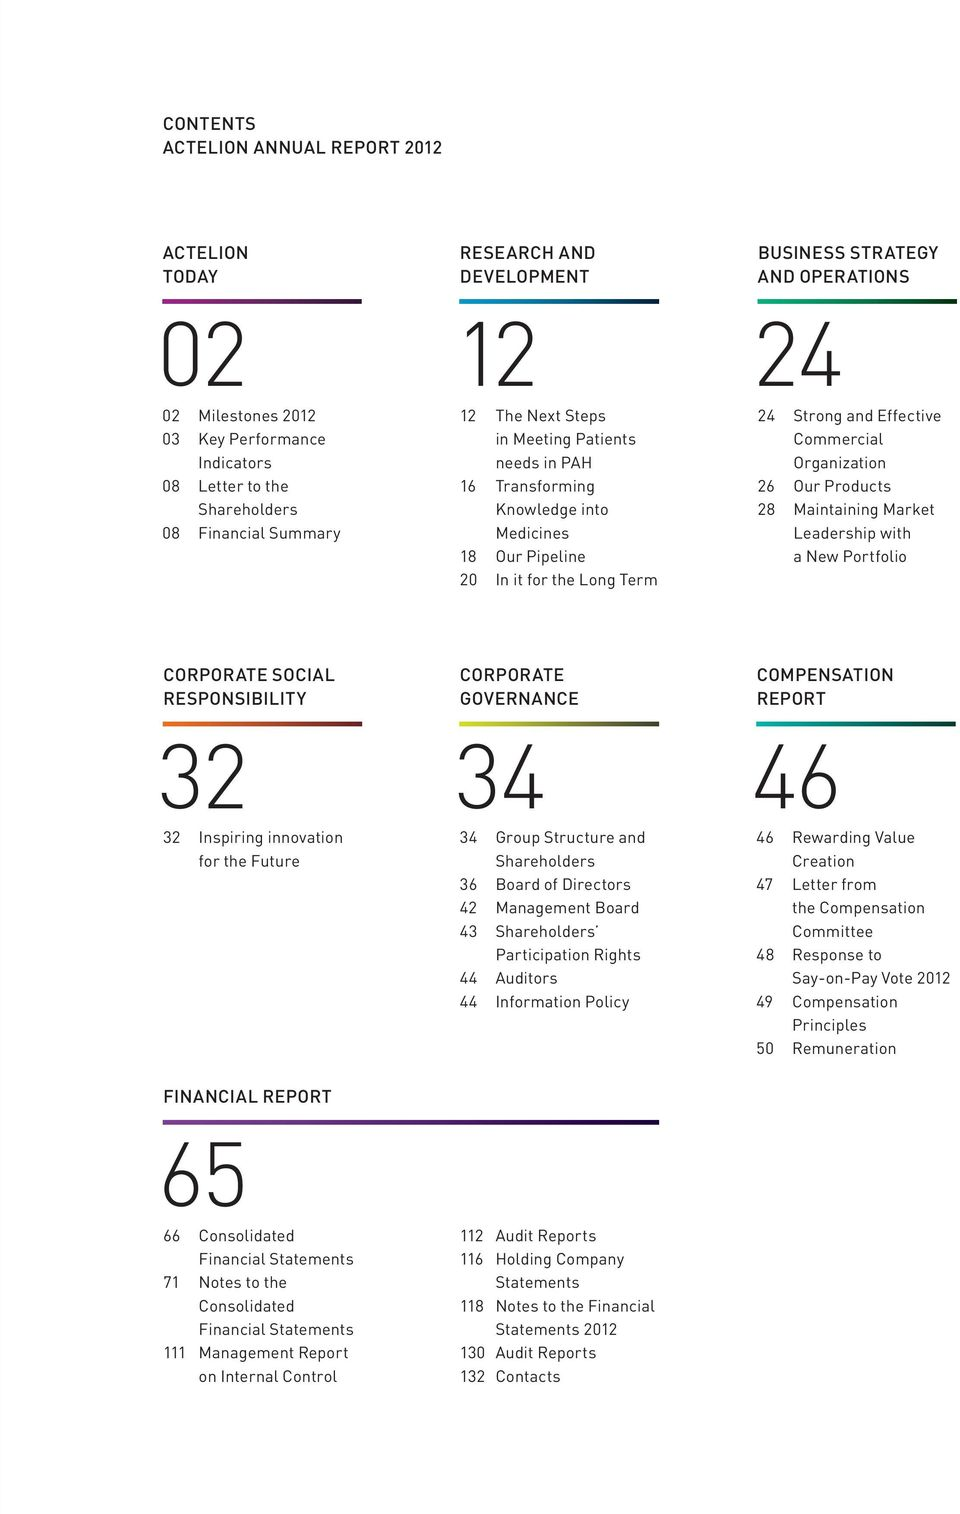 Organization 26 Our Products 28 Maintaining Market Leadership with a New Portfolio CORPORAte SOCIAL responsibility 32 32 Inspiring innovation for the Future CORPORAte GOVernANCE 34 34 Group Structure